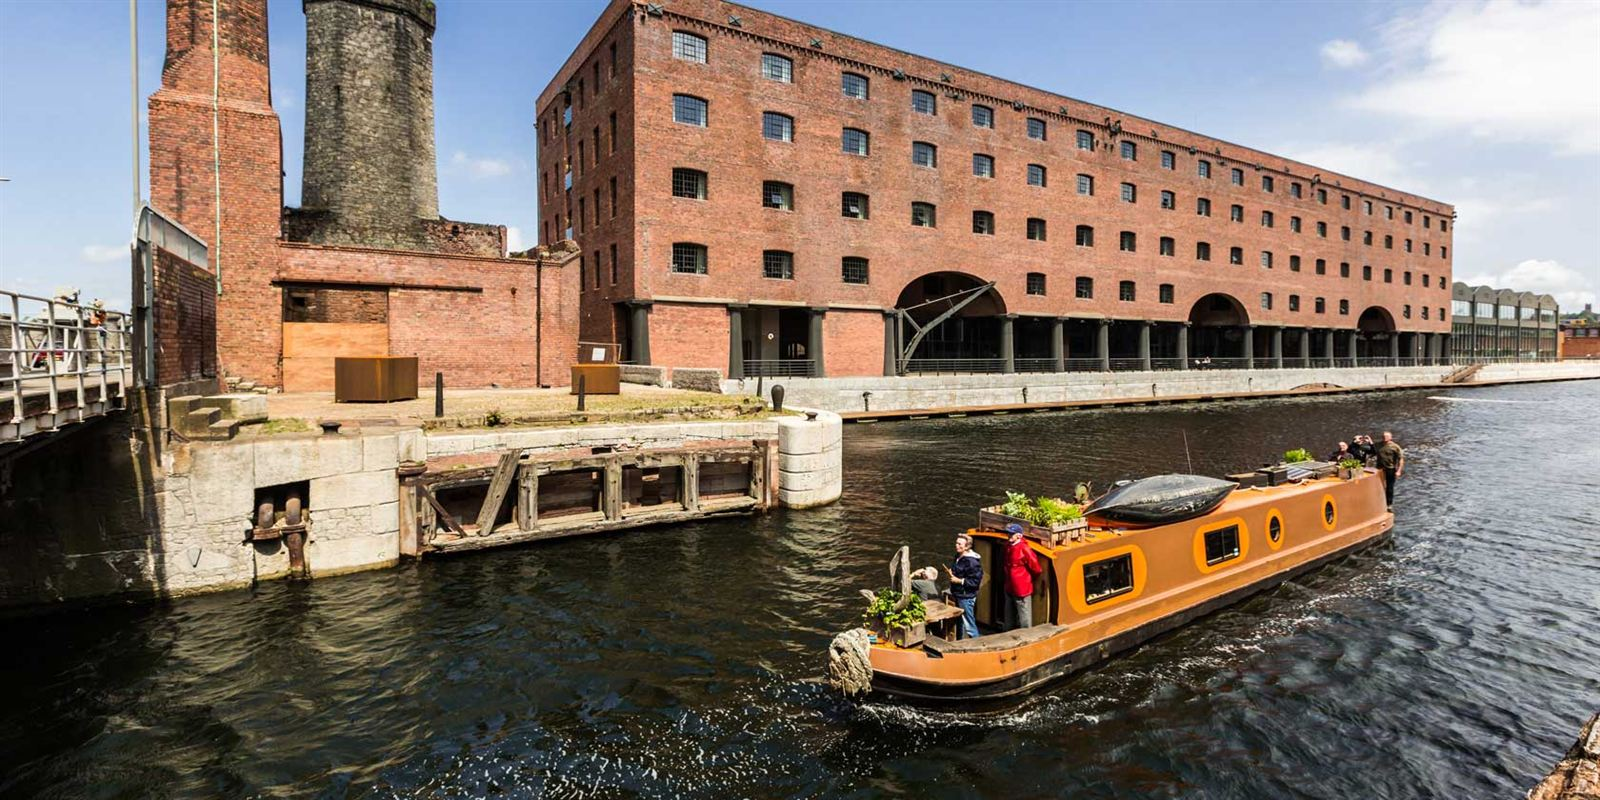 Spa Hotels Liverpool Docks